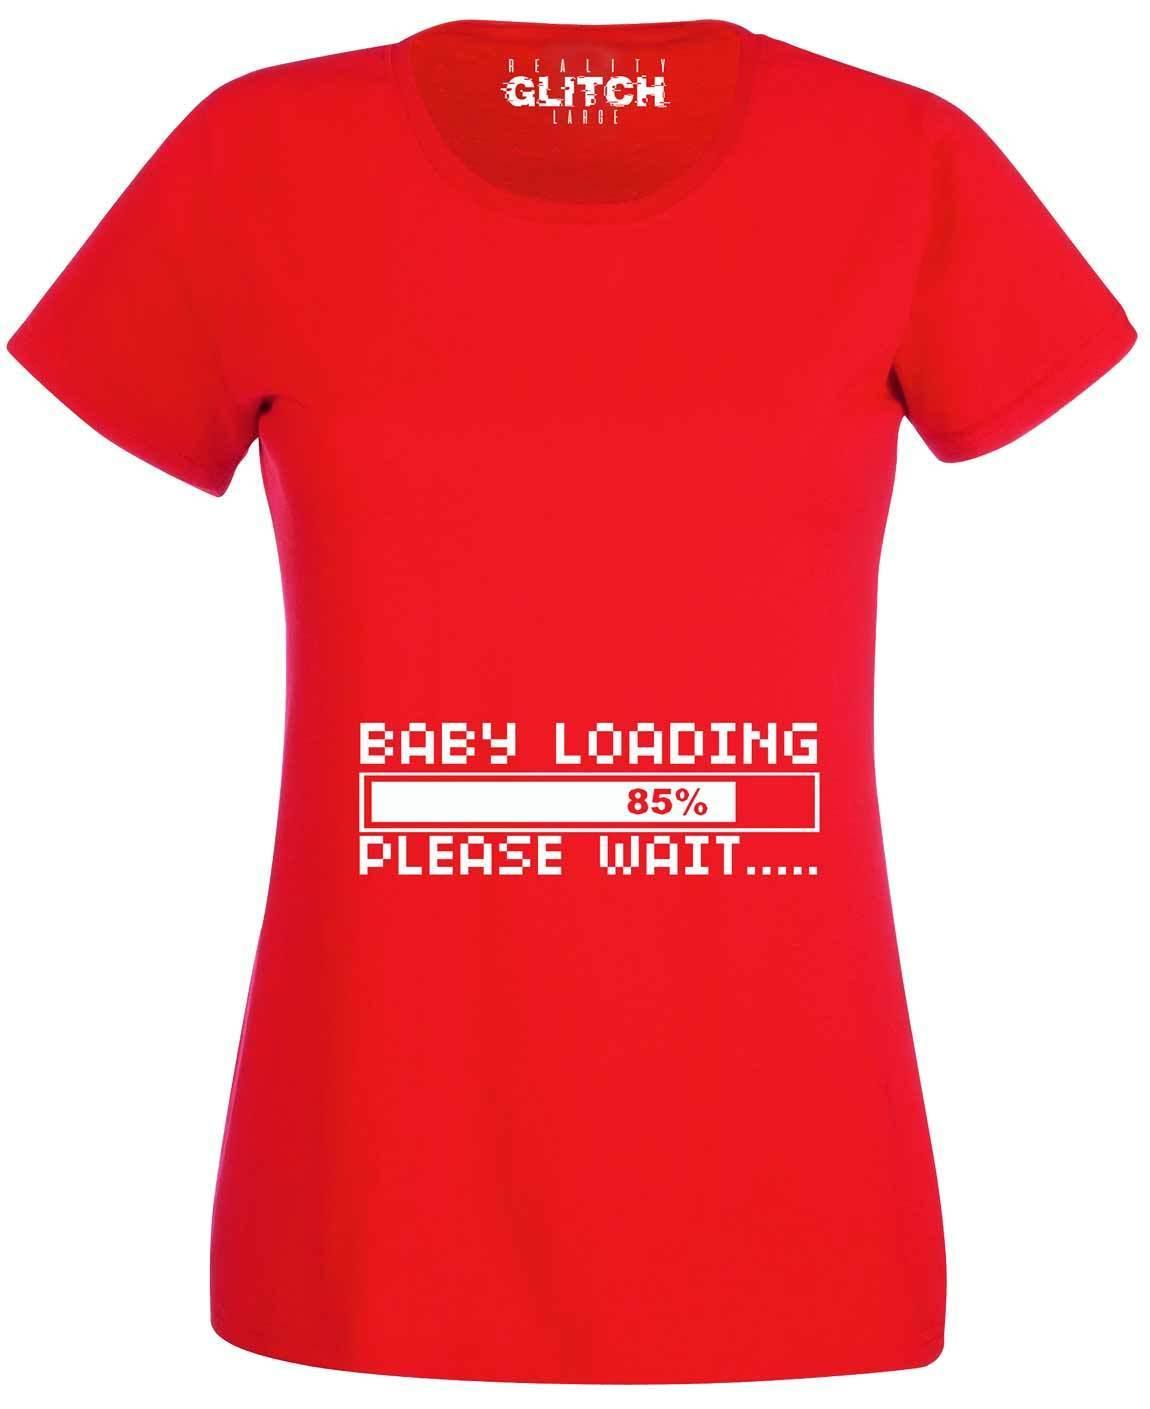 548215ae4b Womens Baby Loading Pregnancy T Shirt Pregnant Maternity T Shirt Ladies  White T Shirt Designs Awesome T Shirt Sites From Bangtidyclothing, $10.9|  DHgate.Com